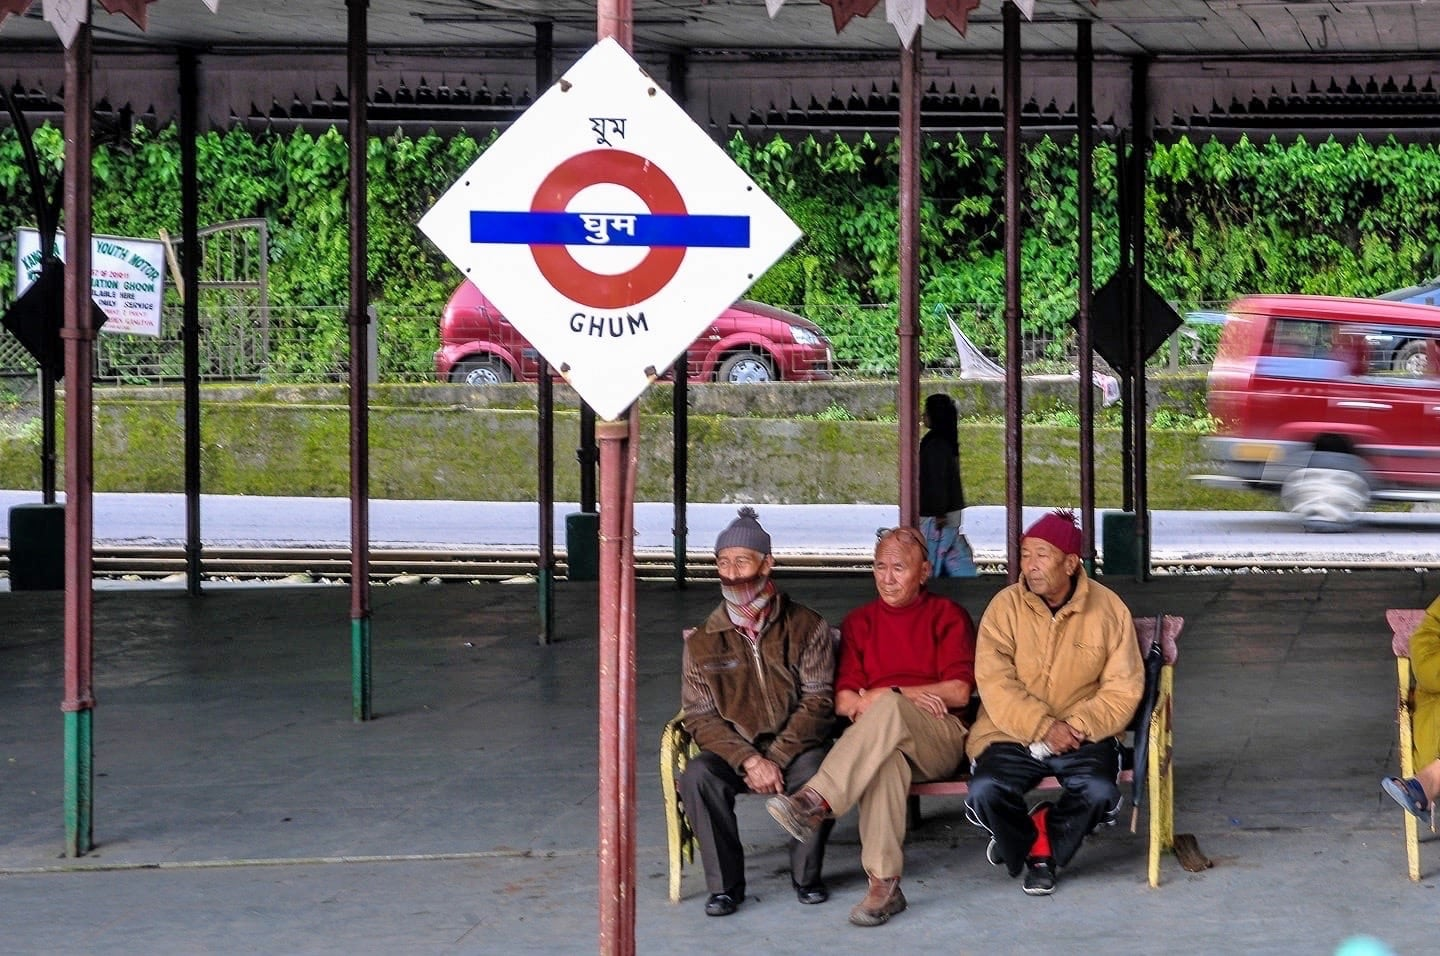 three men wait at Ghum Darjeeling Toy Train